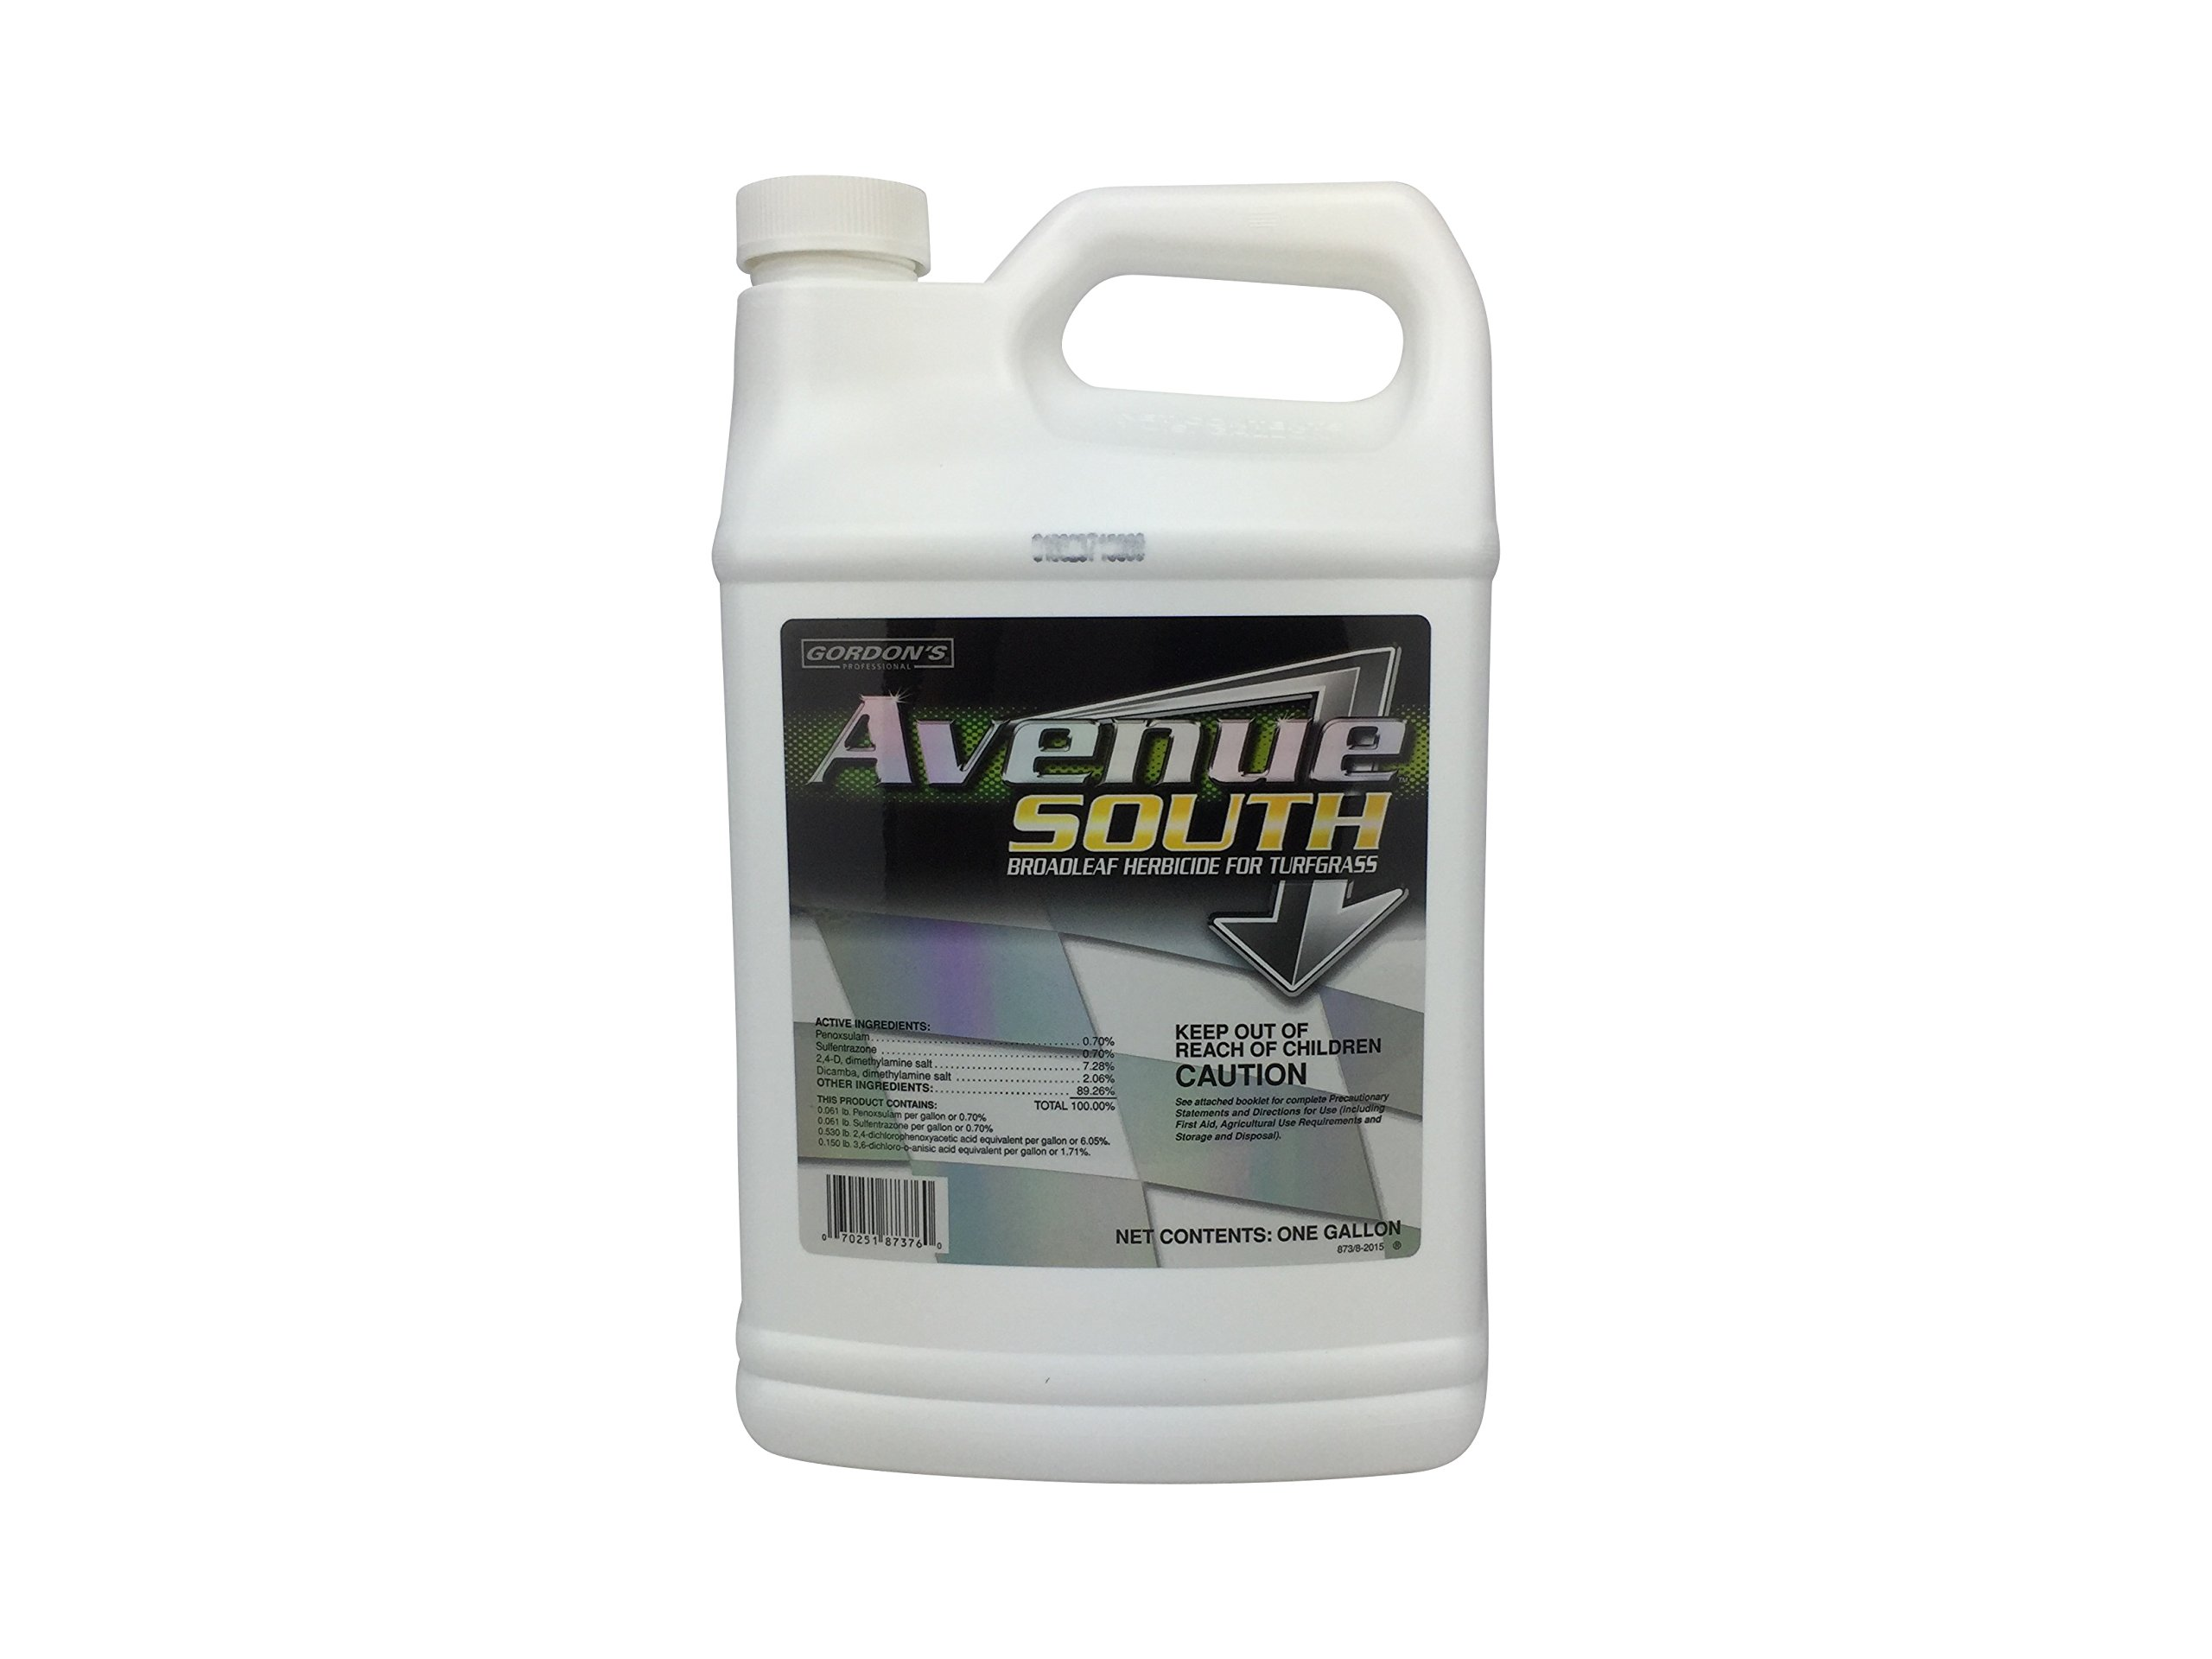 Avenue South Broadleaf Herbicide for Turfgrass by Avenue South